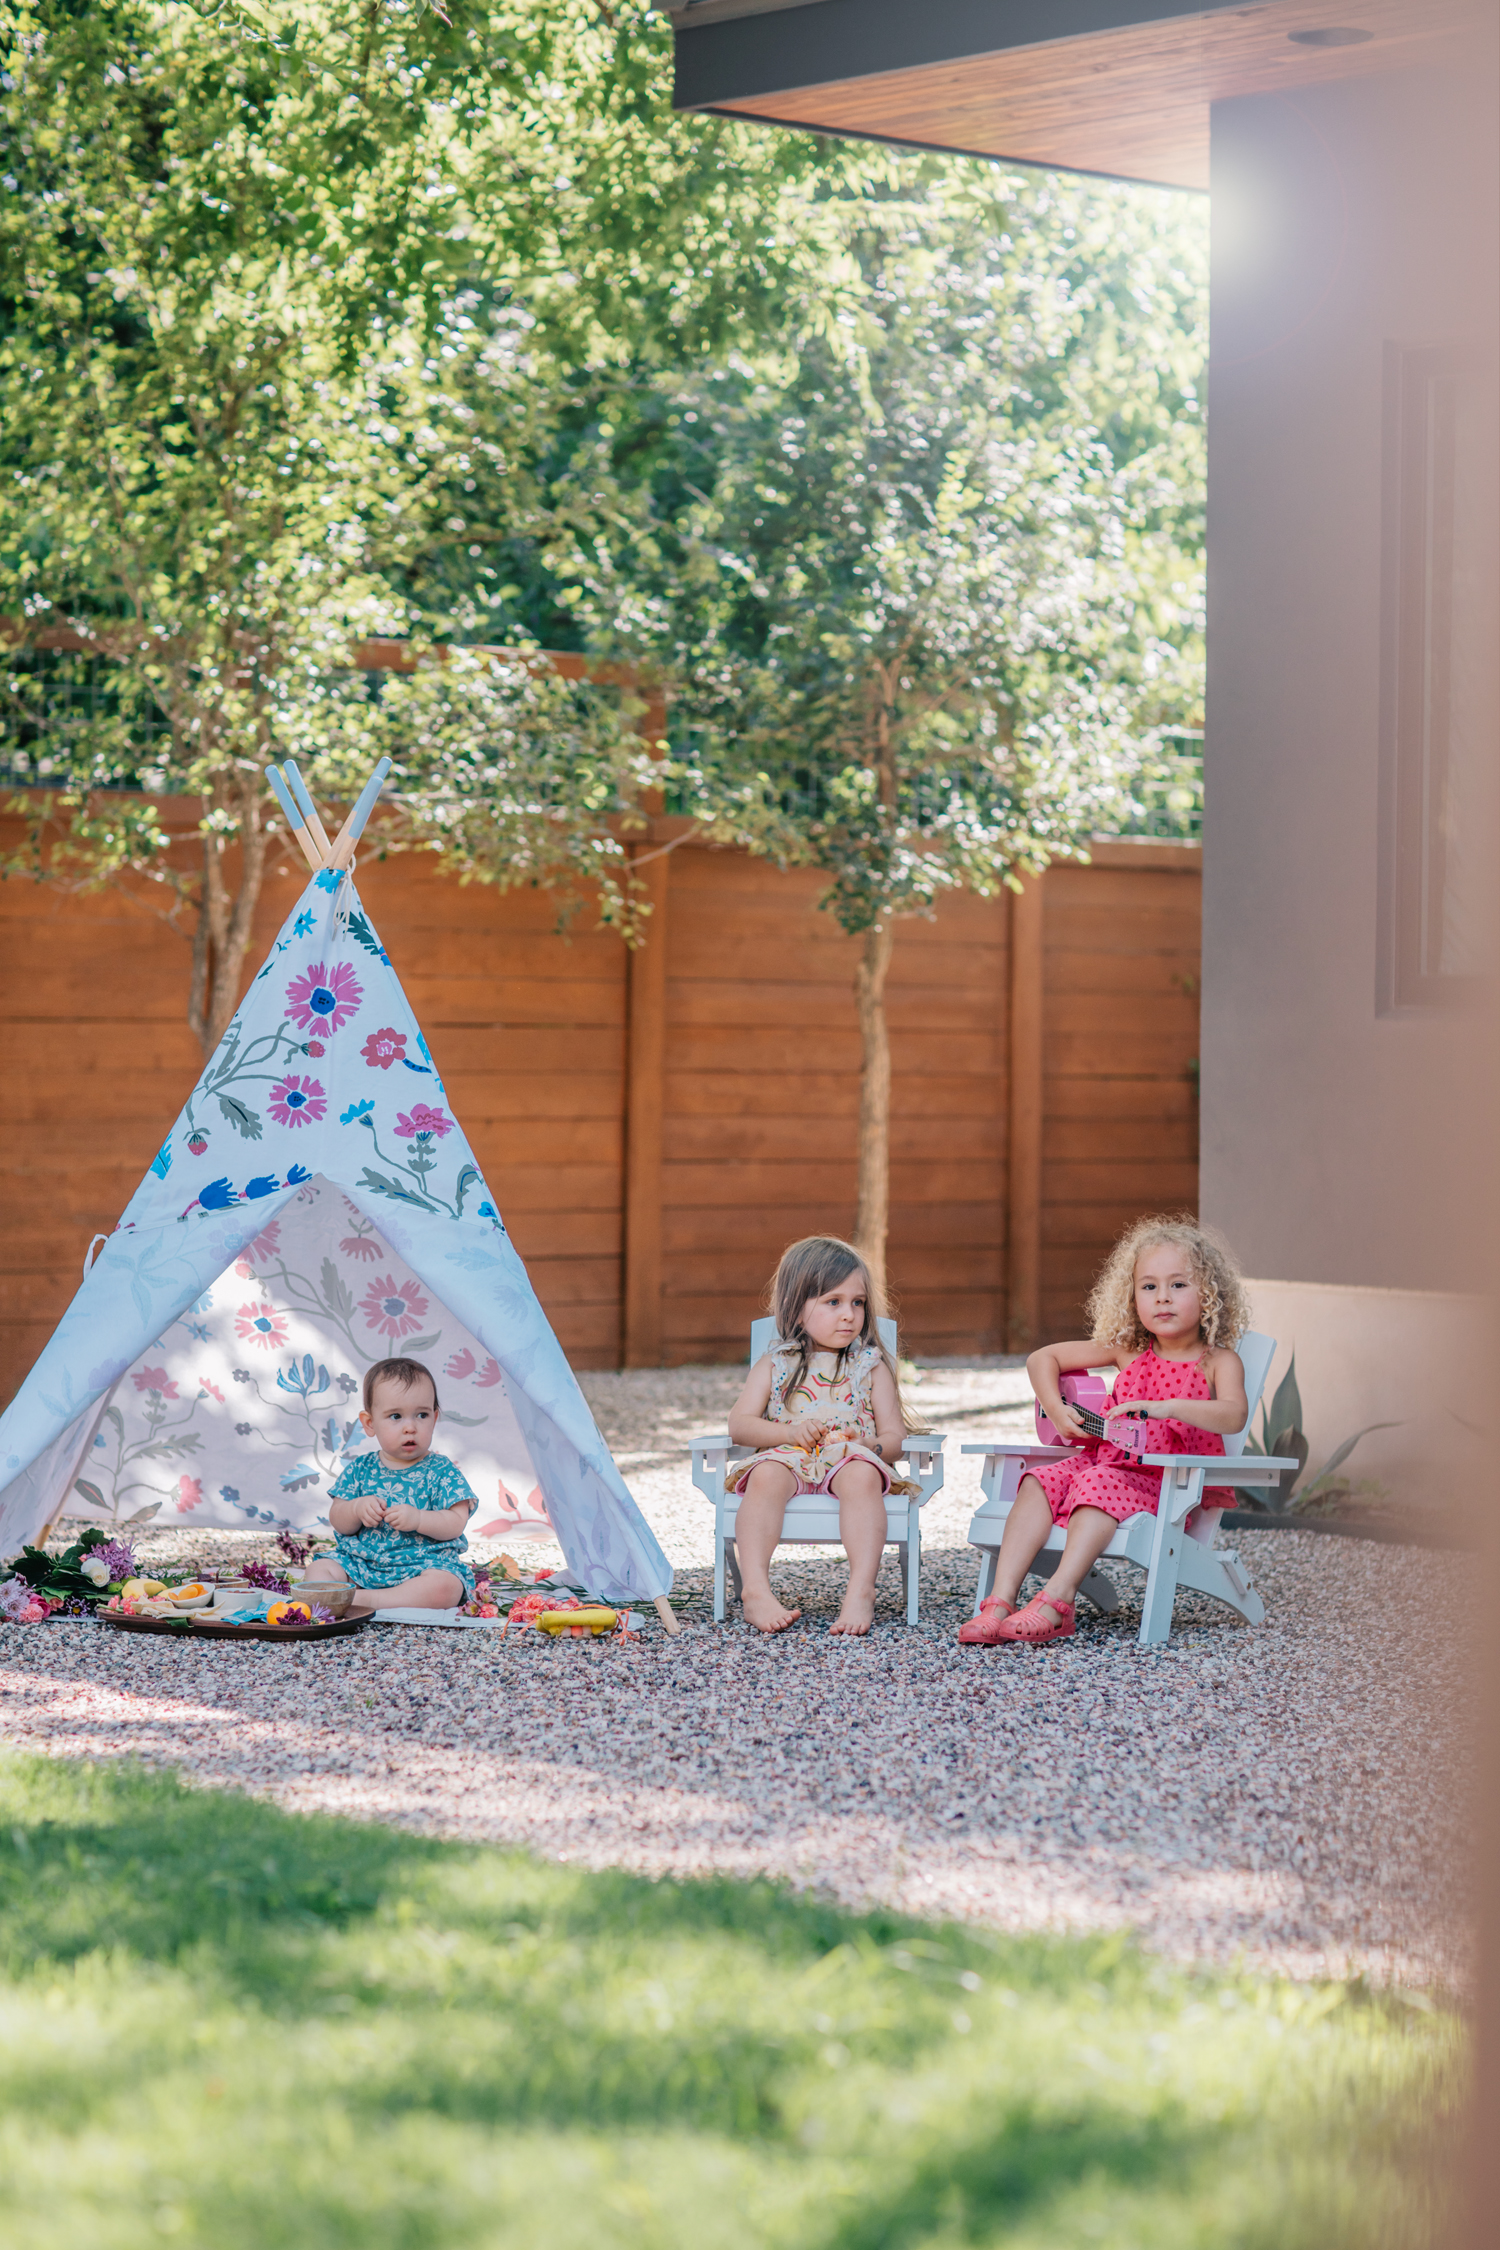 Summer Adventures in Our Own Backyard - The Effortless Chic